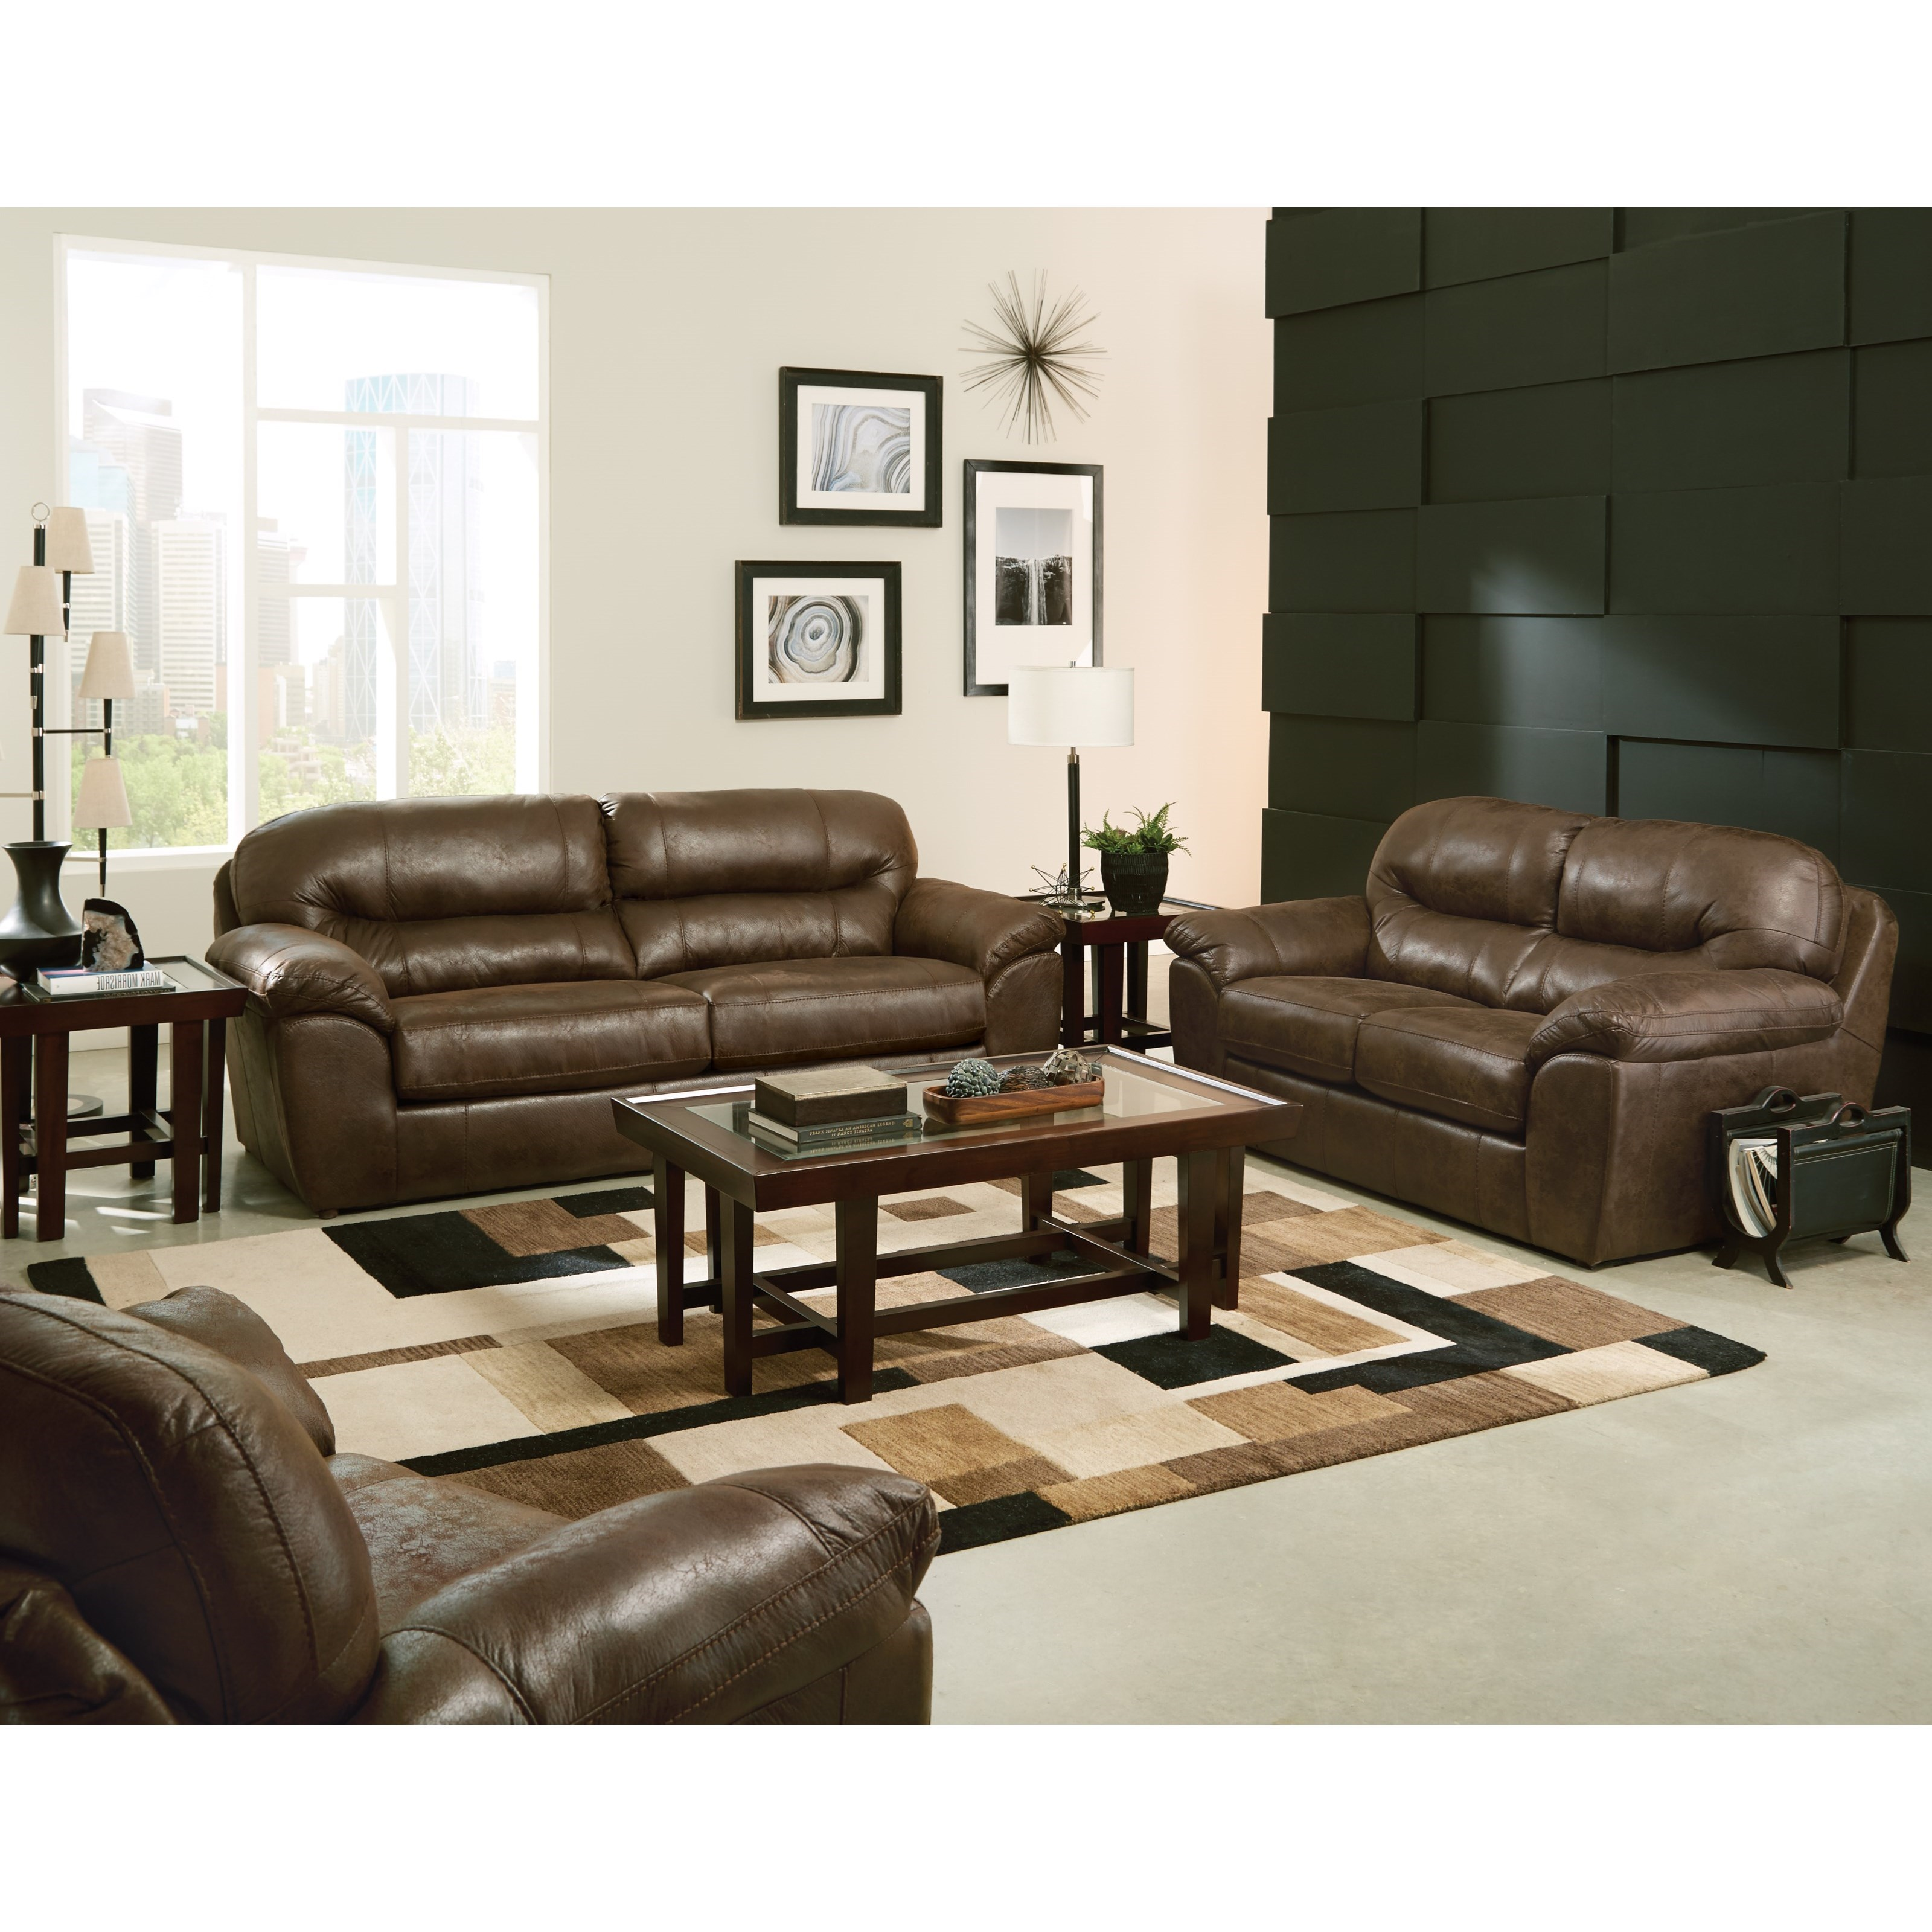 sofa with pillow arms by jackson furniture wolf and gardiner wolf furniture. Black Bedroom Furniture Sets. Home Design Ideas